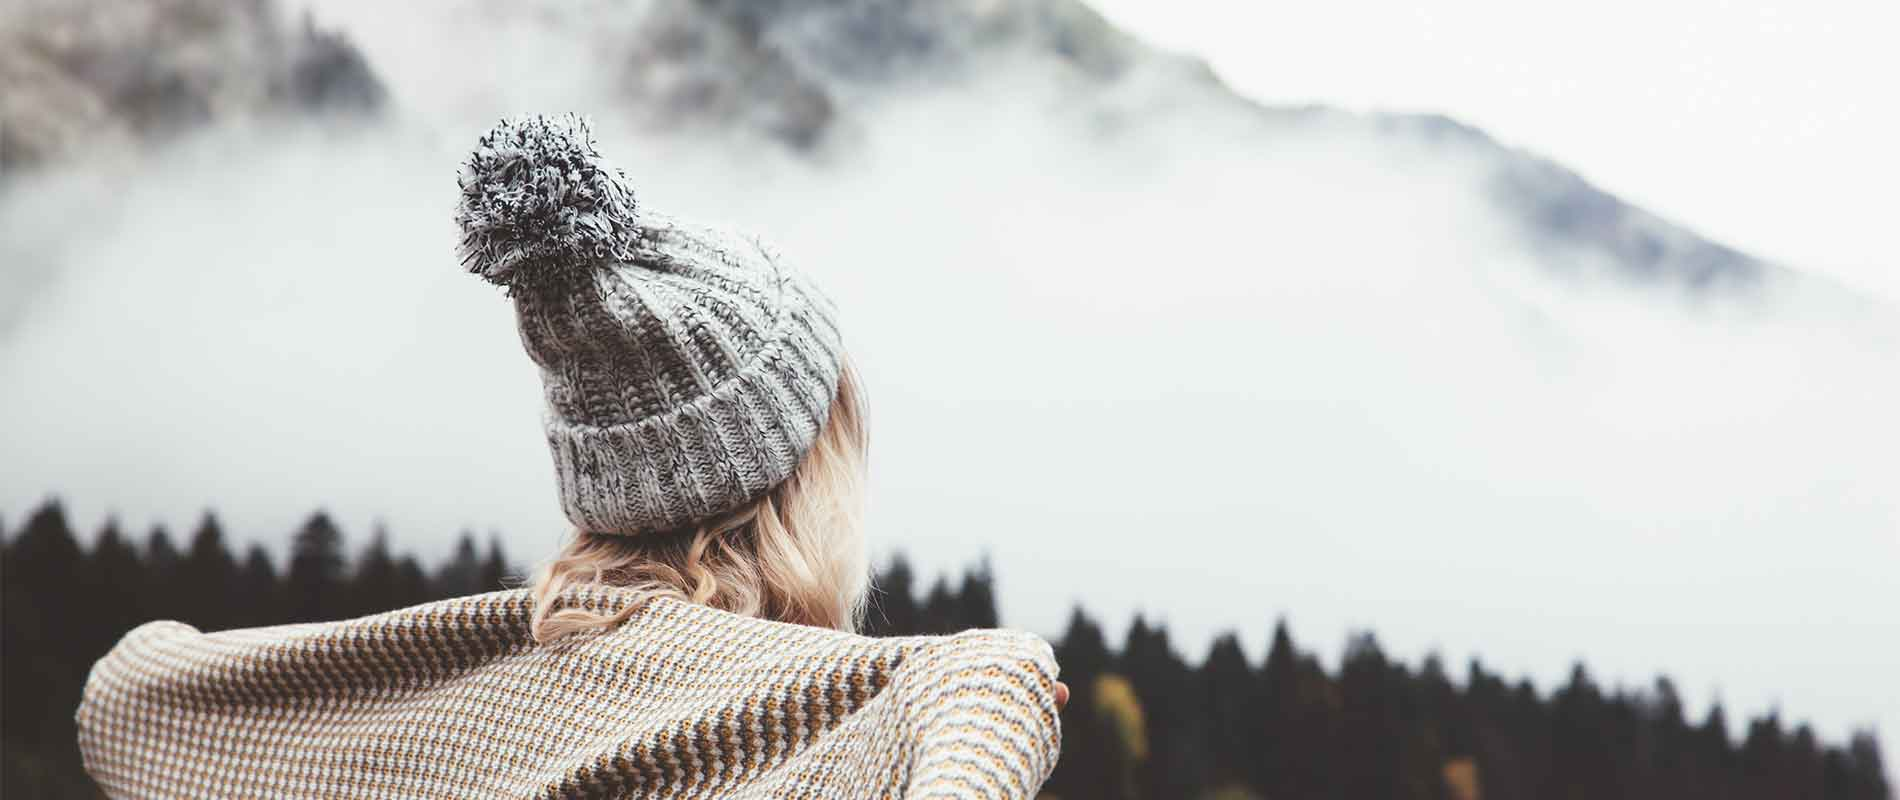 Girl staying warm in wintry setting wearing a knitted bobble hat